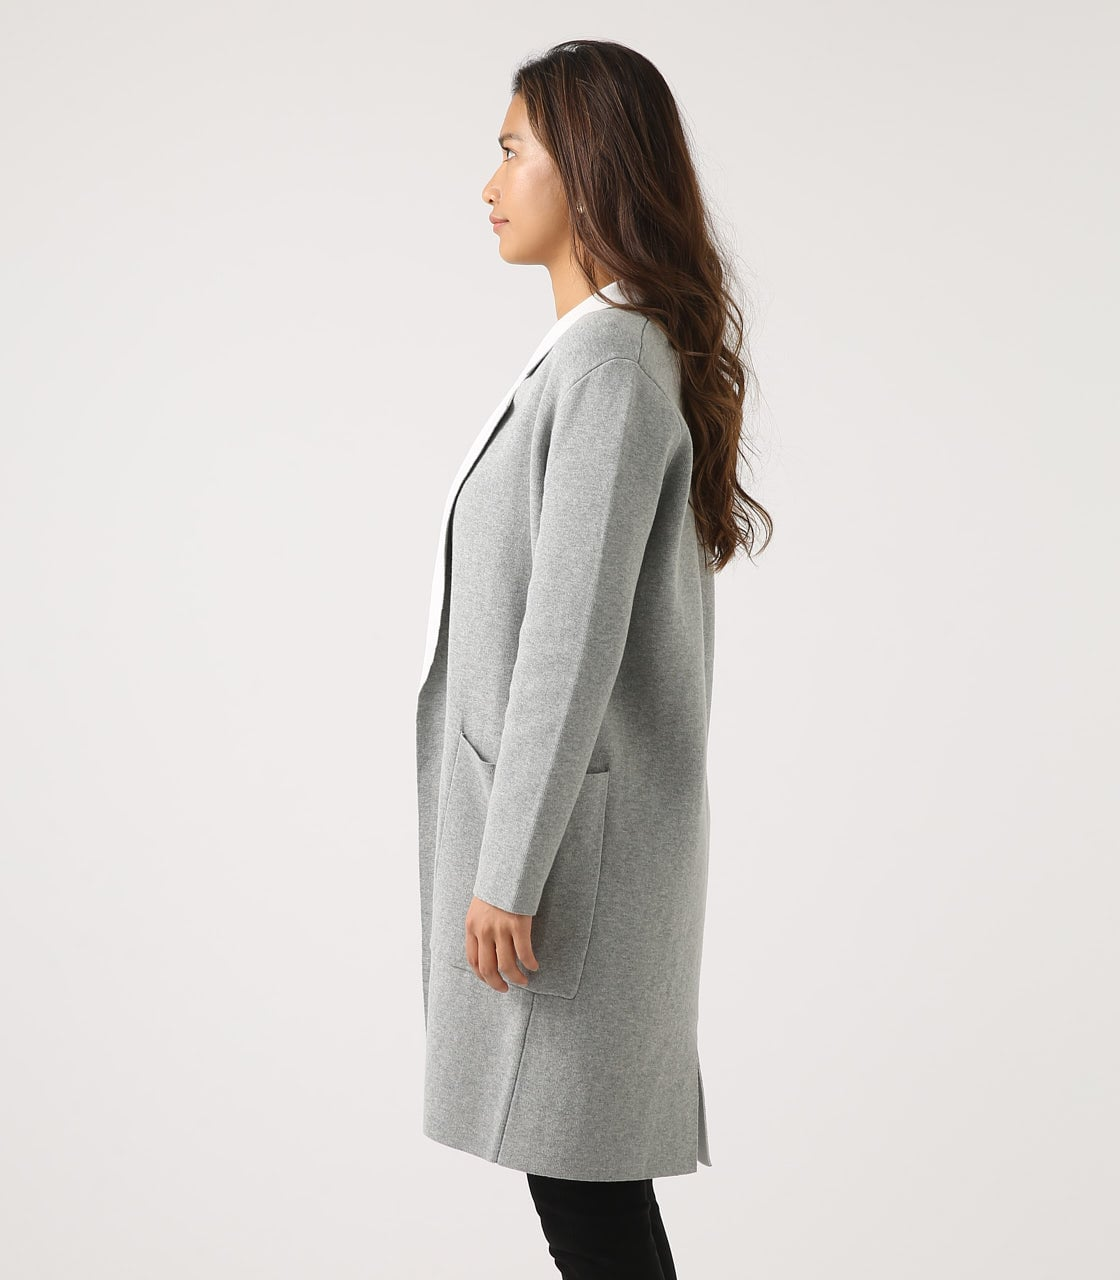 【AZUL BY MOUSSY】COCOON KNIT COAT 詳細画像 T.GRY 6